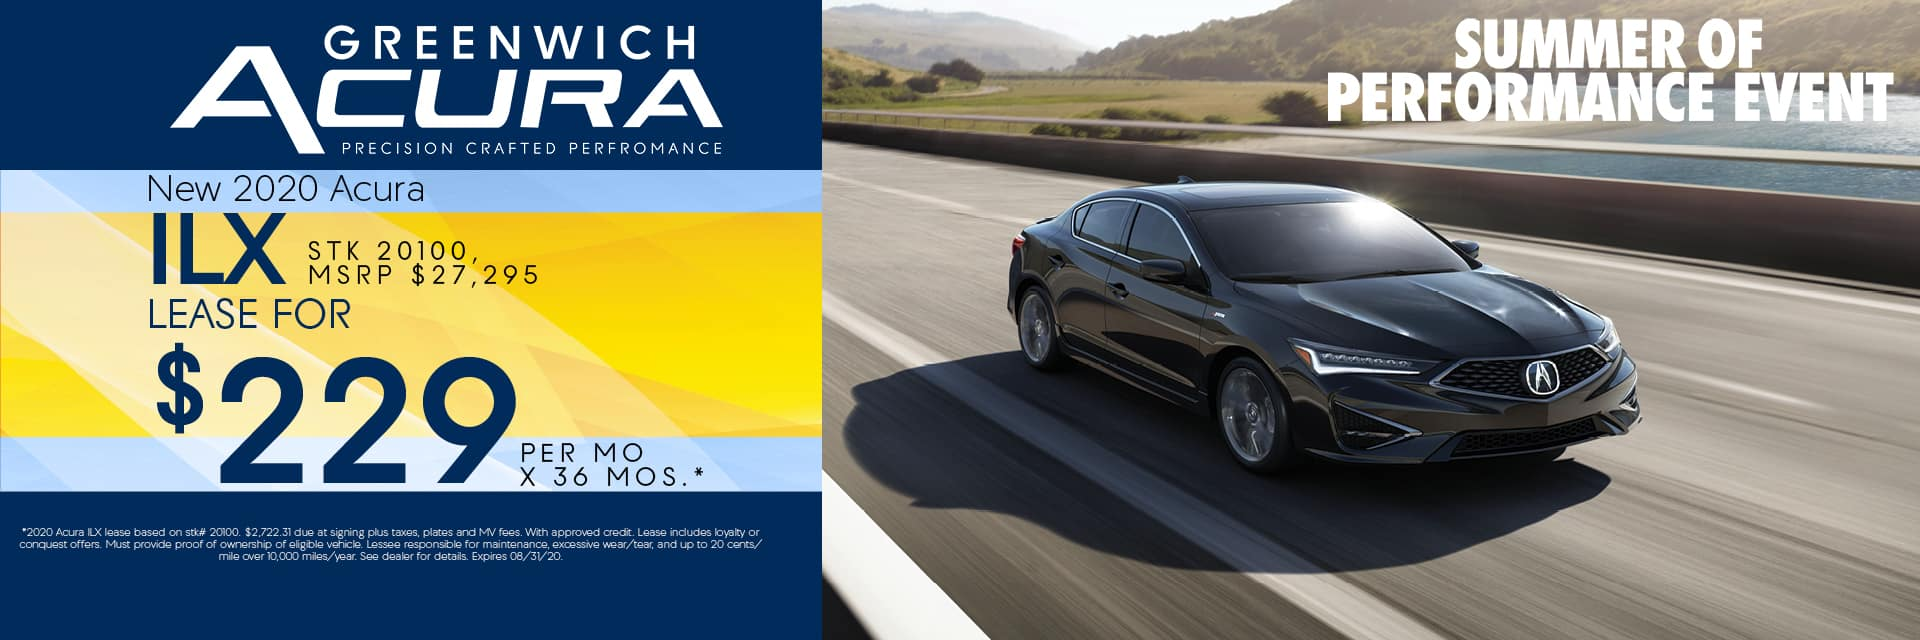 New 2020 Acura ILX Lease for $229 for 36mos. | Greenwich, CT